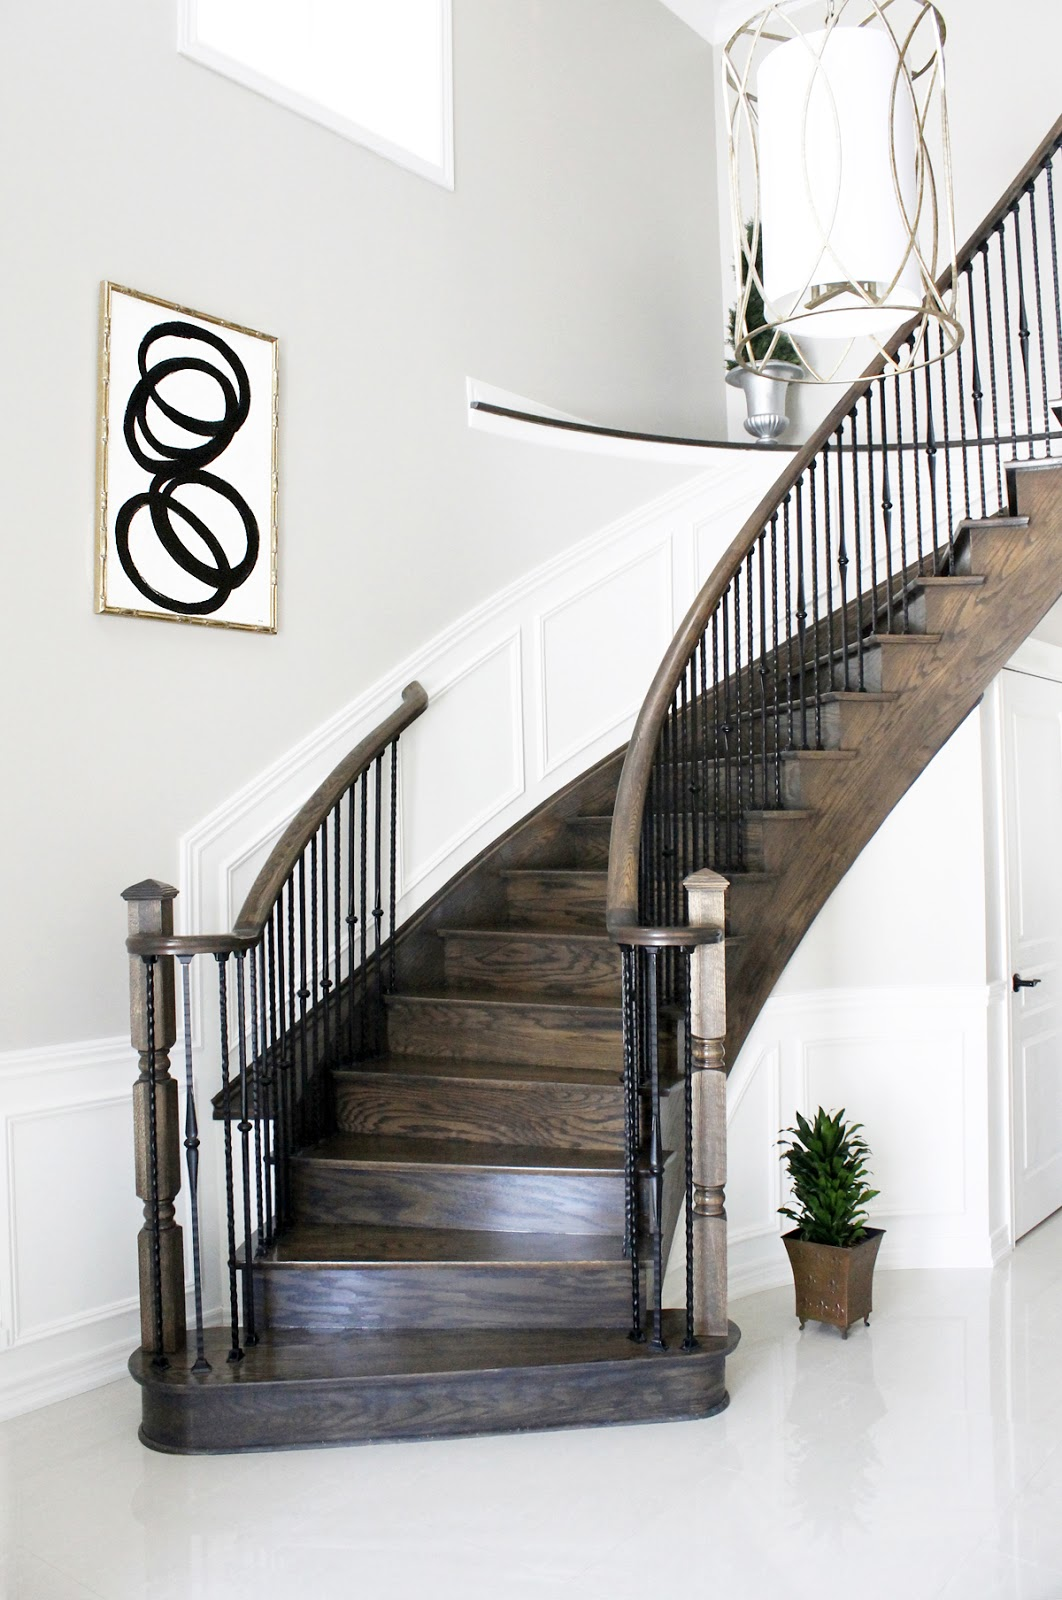 Ideas For Wall Decor On Stairs : Stylish stairway gallery walls